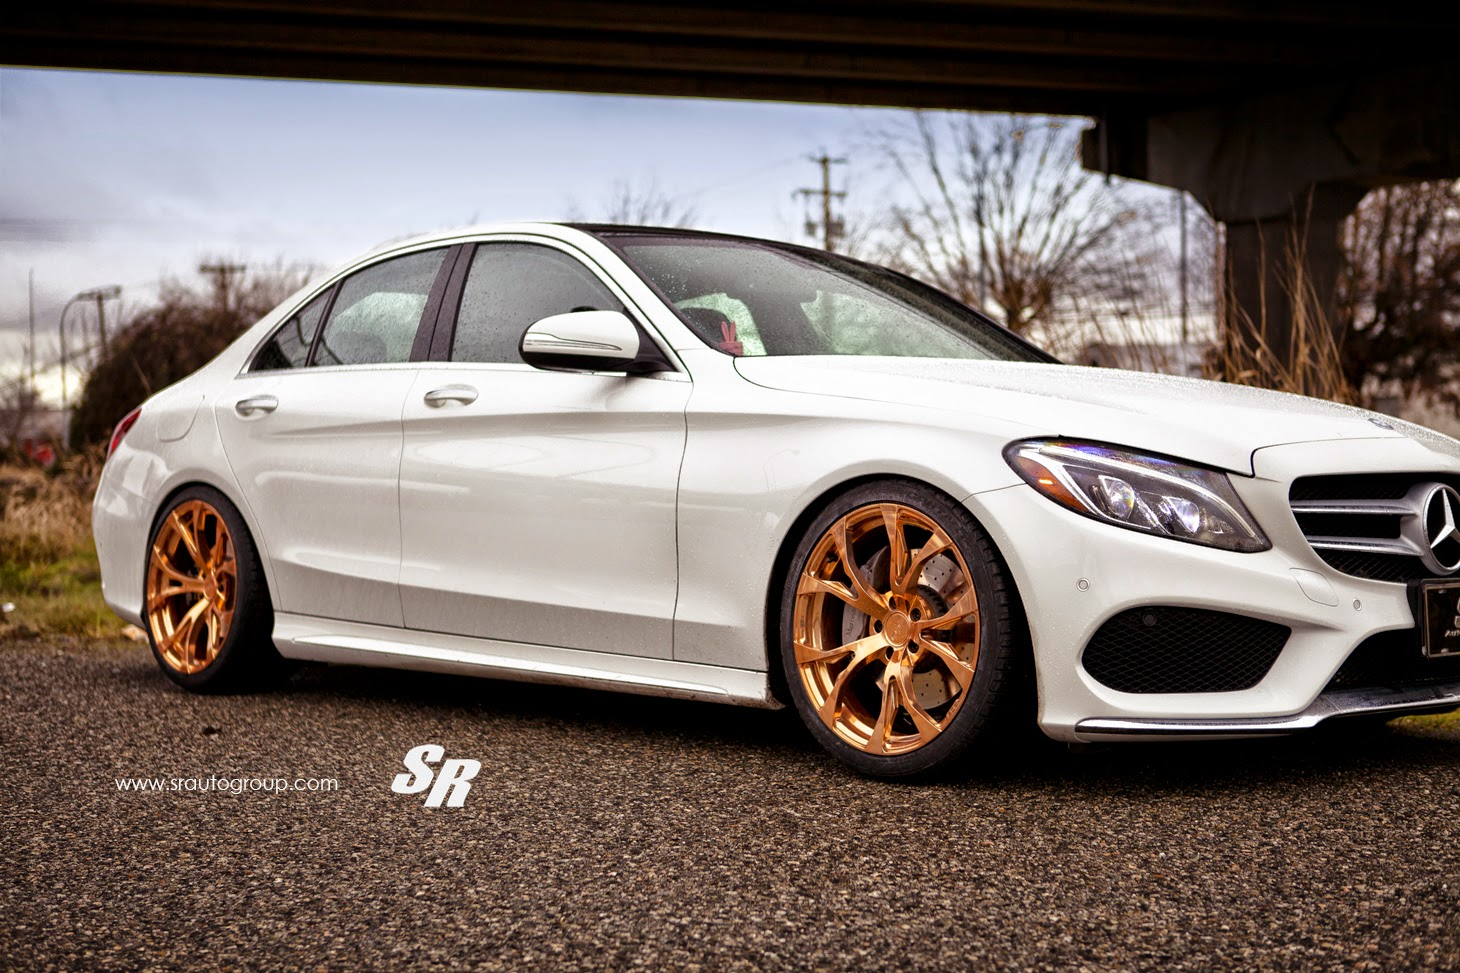 Mercedes benz w205 c300 on rich gold pur rs04 wheels for Mercedes benz rims c300